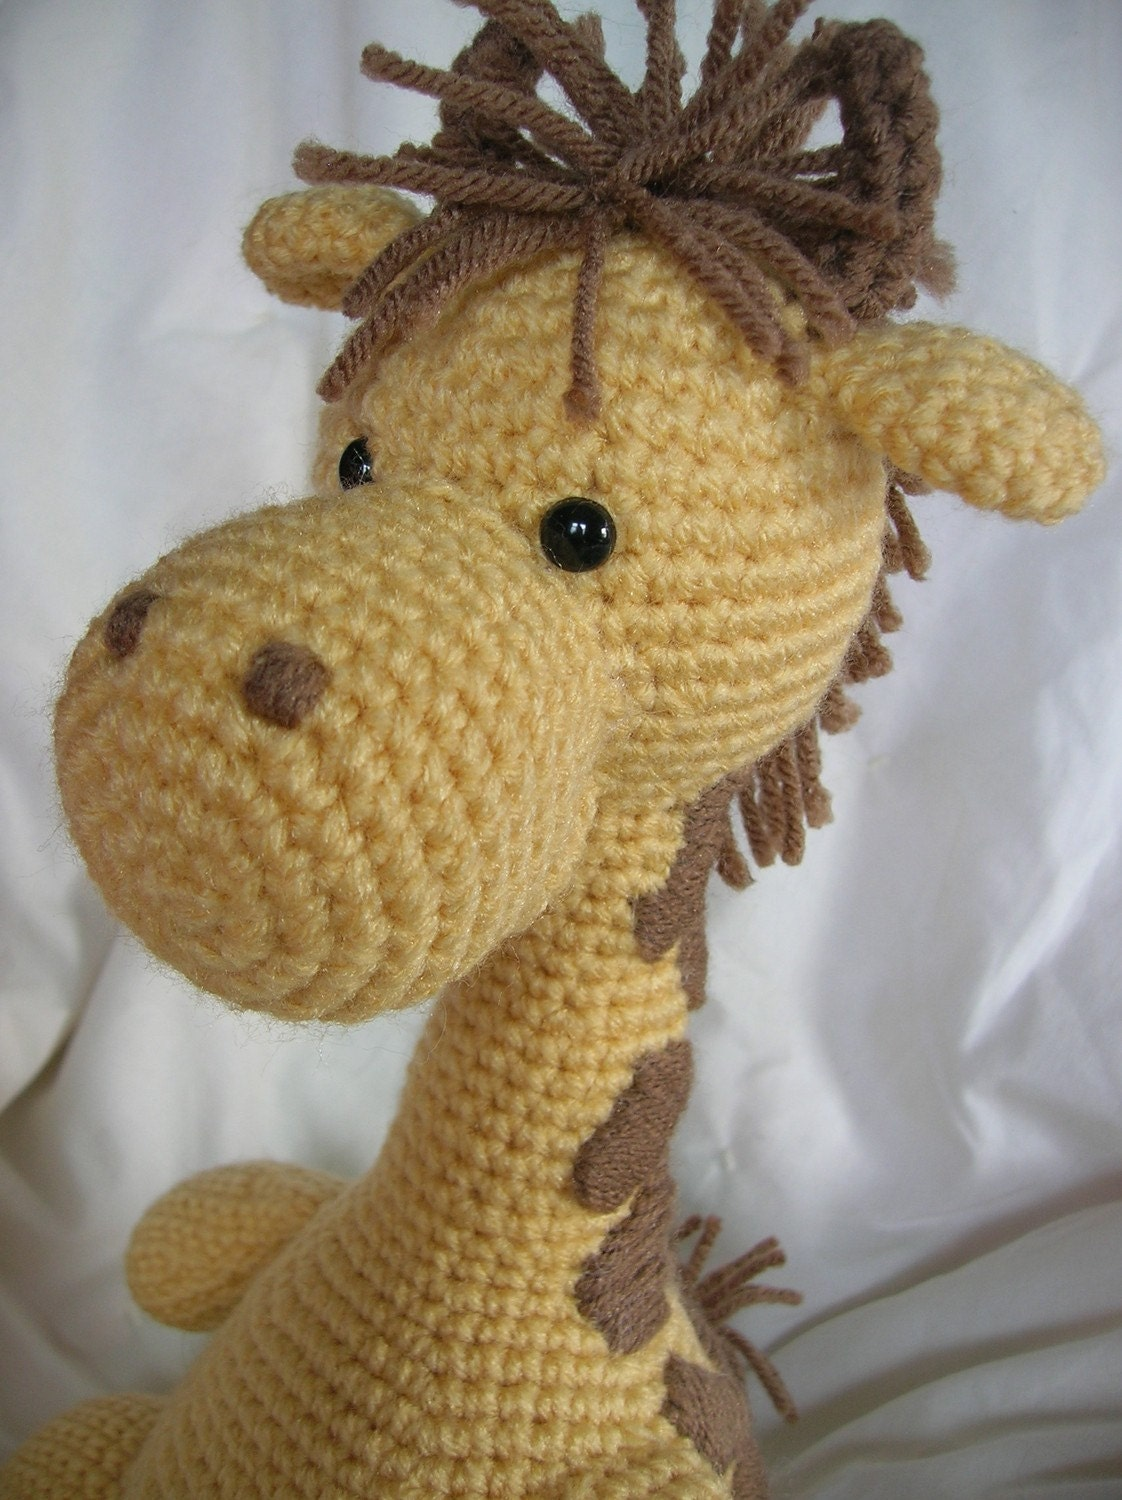 Crochet Animals : ... ear for amigurumi crochet by wiremysoul crochet tutorial amigurumi